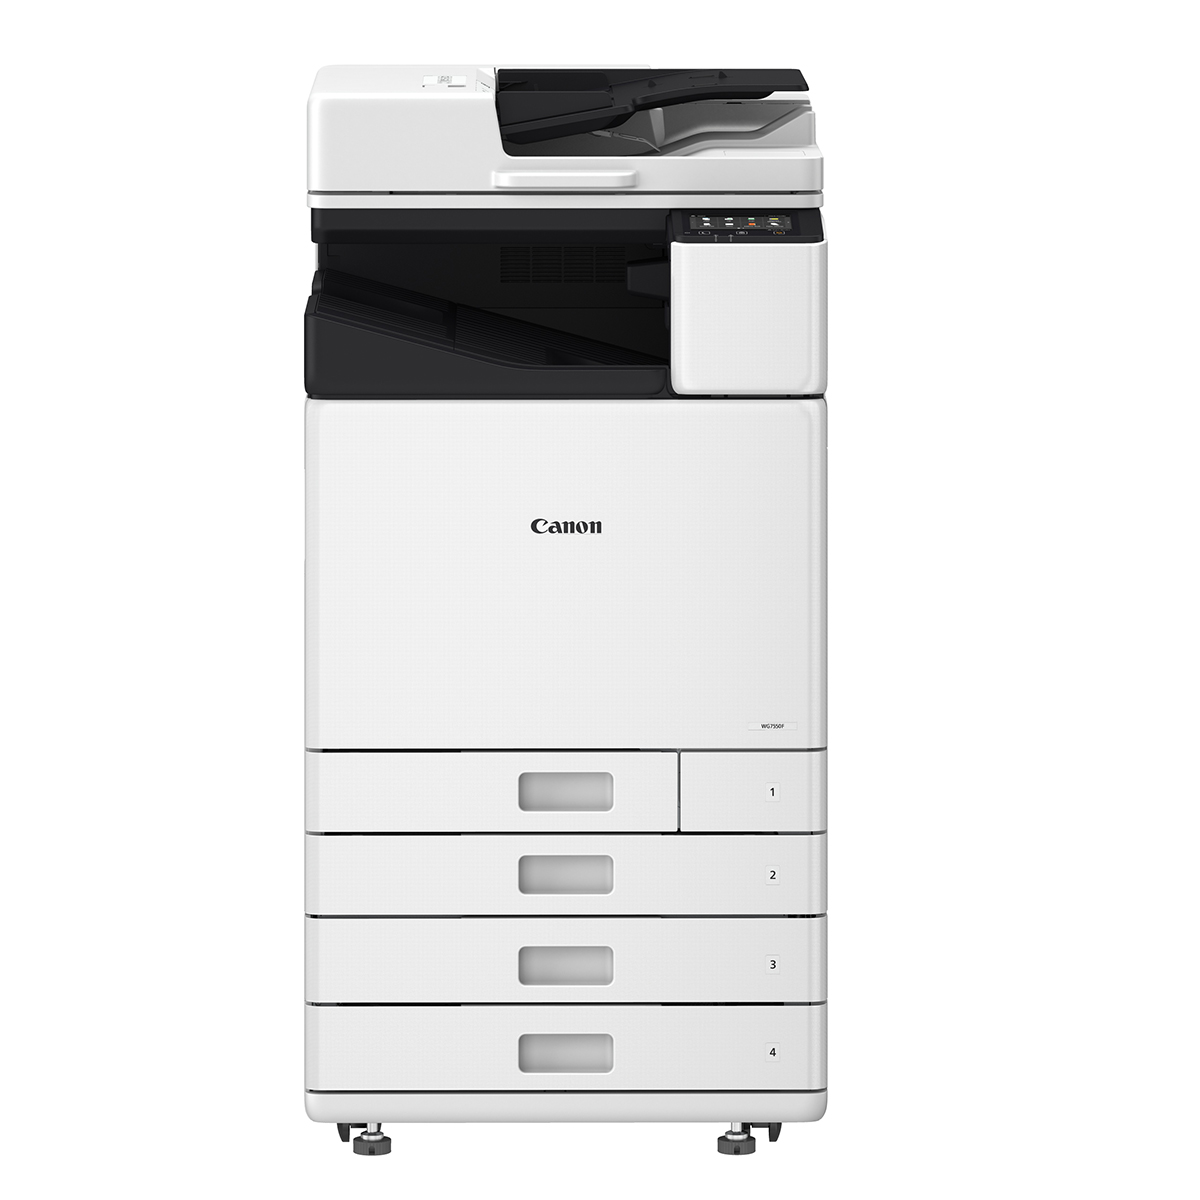 Canon WG7550 Business Inkjet A3 Multifunction